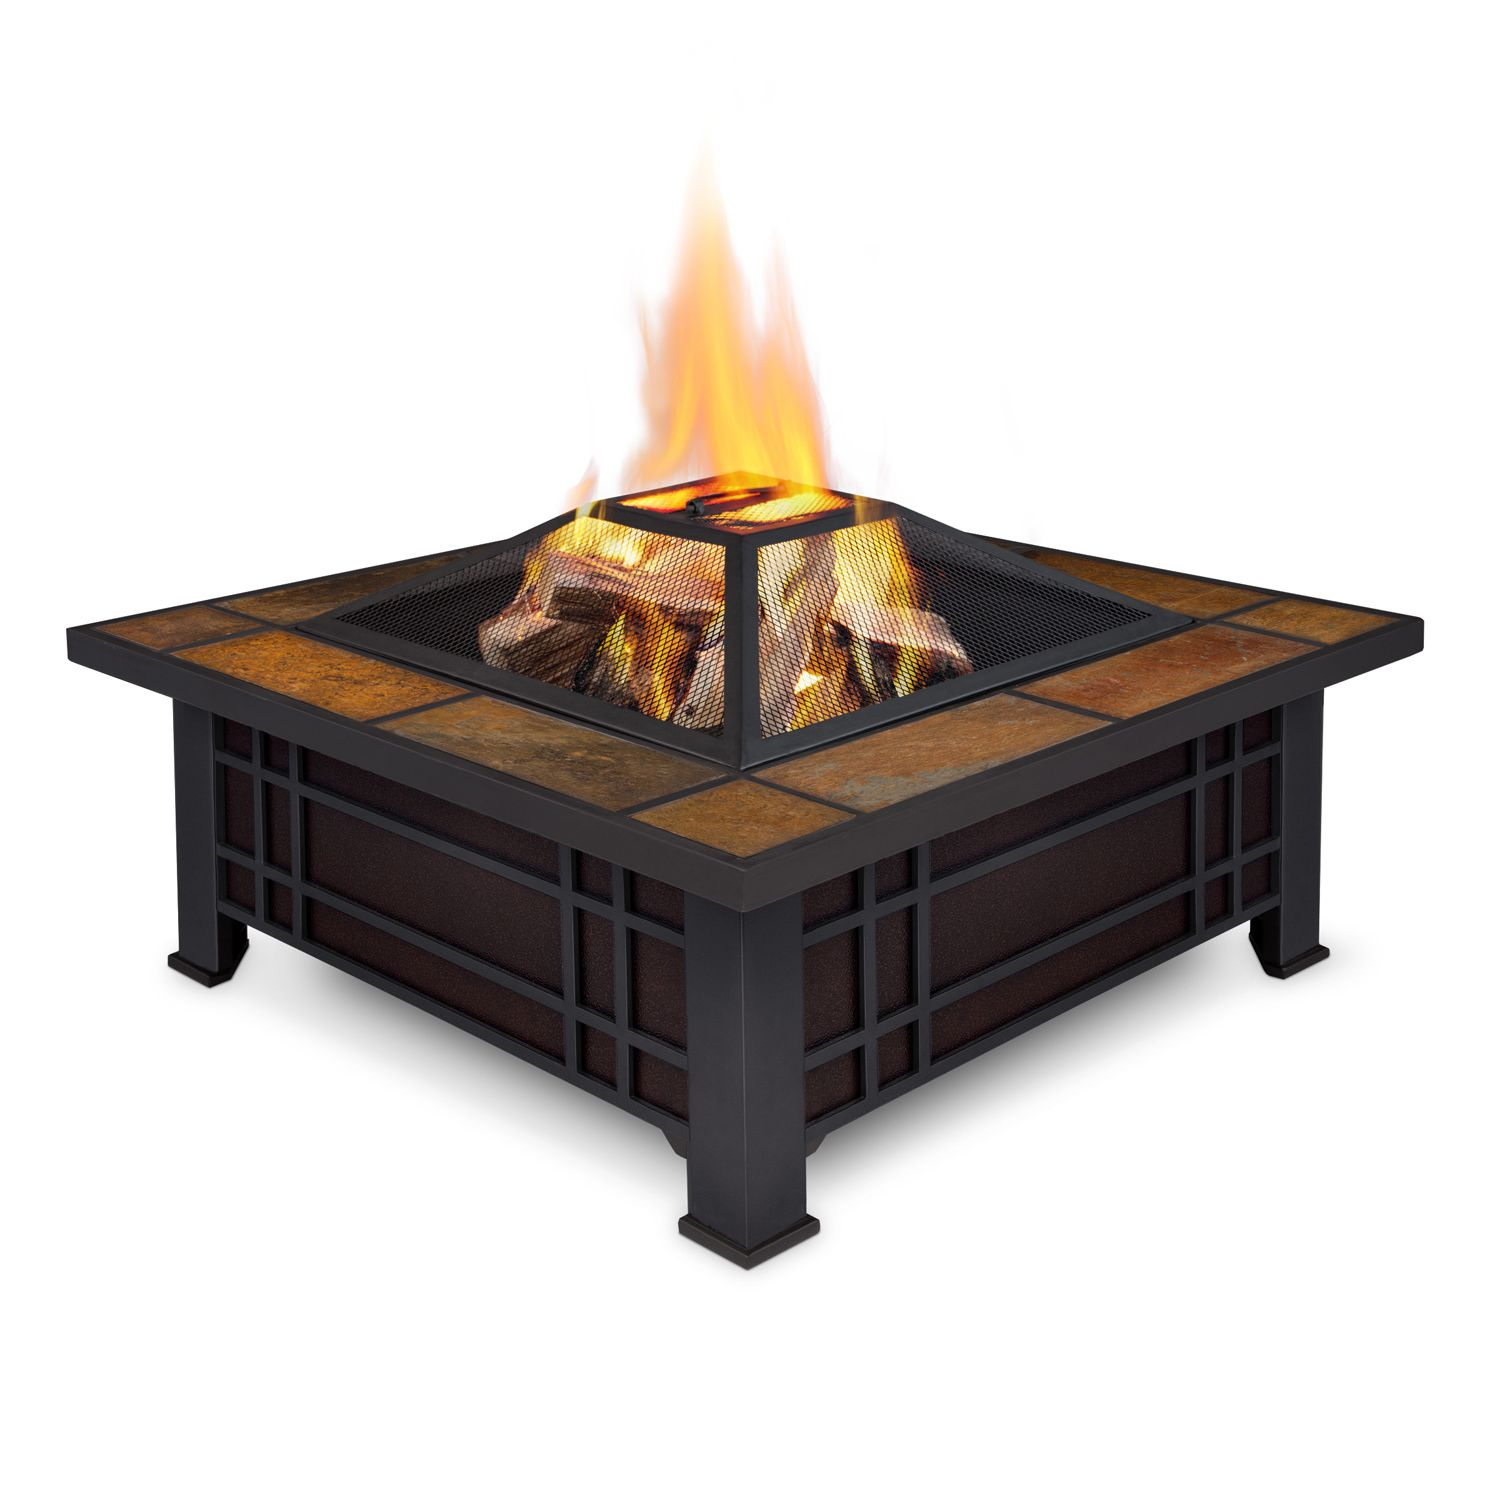 Epic Real Flame Morrison Fire Pit Outdoor